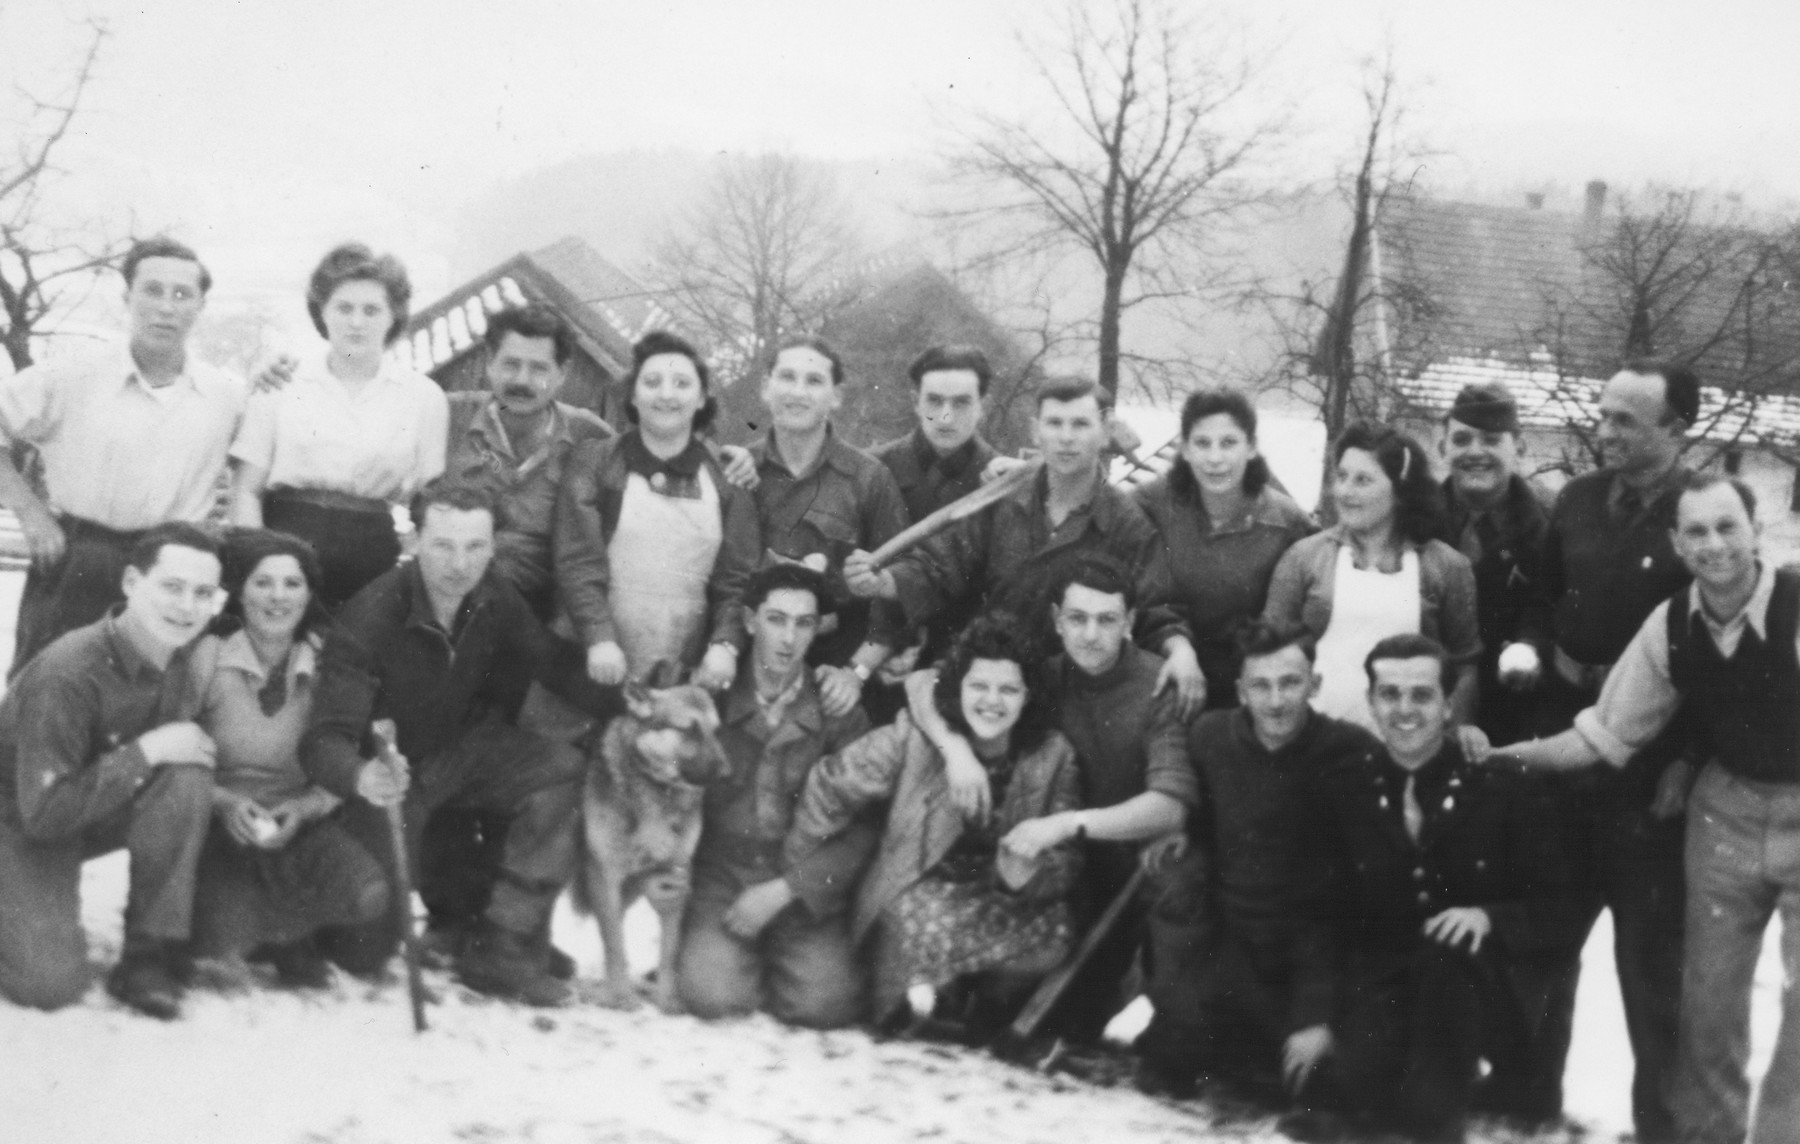 Group portrait of members of Kibbutz Buchenwald posing in the snow.  Among those pictured is Mayer Abramowitz (front row kneeling, far right).